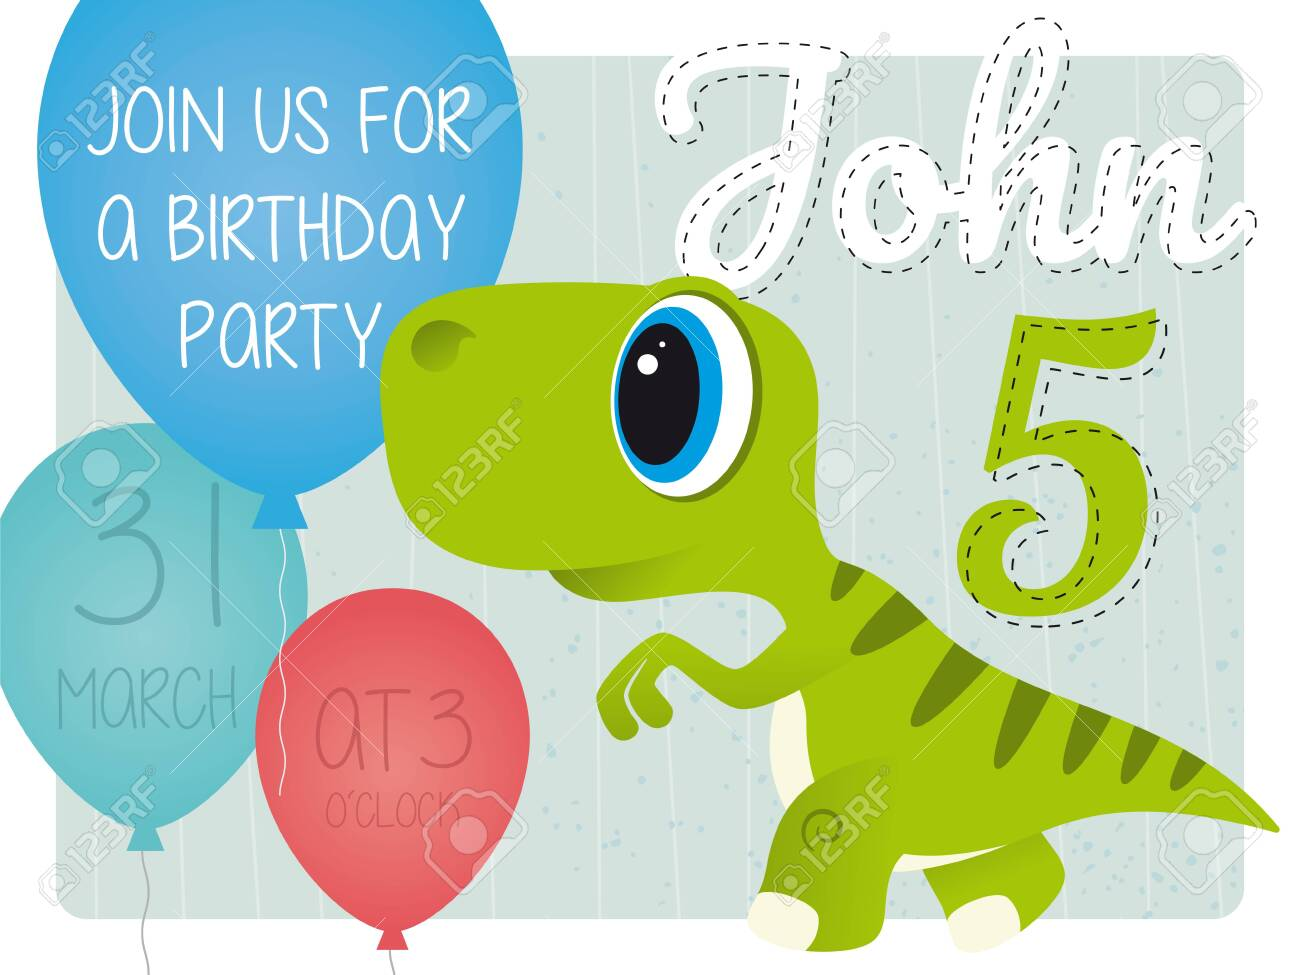 john 5th birthday party invitation card with dinosaur